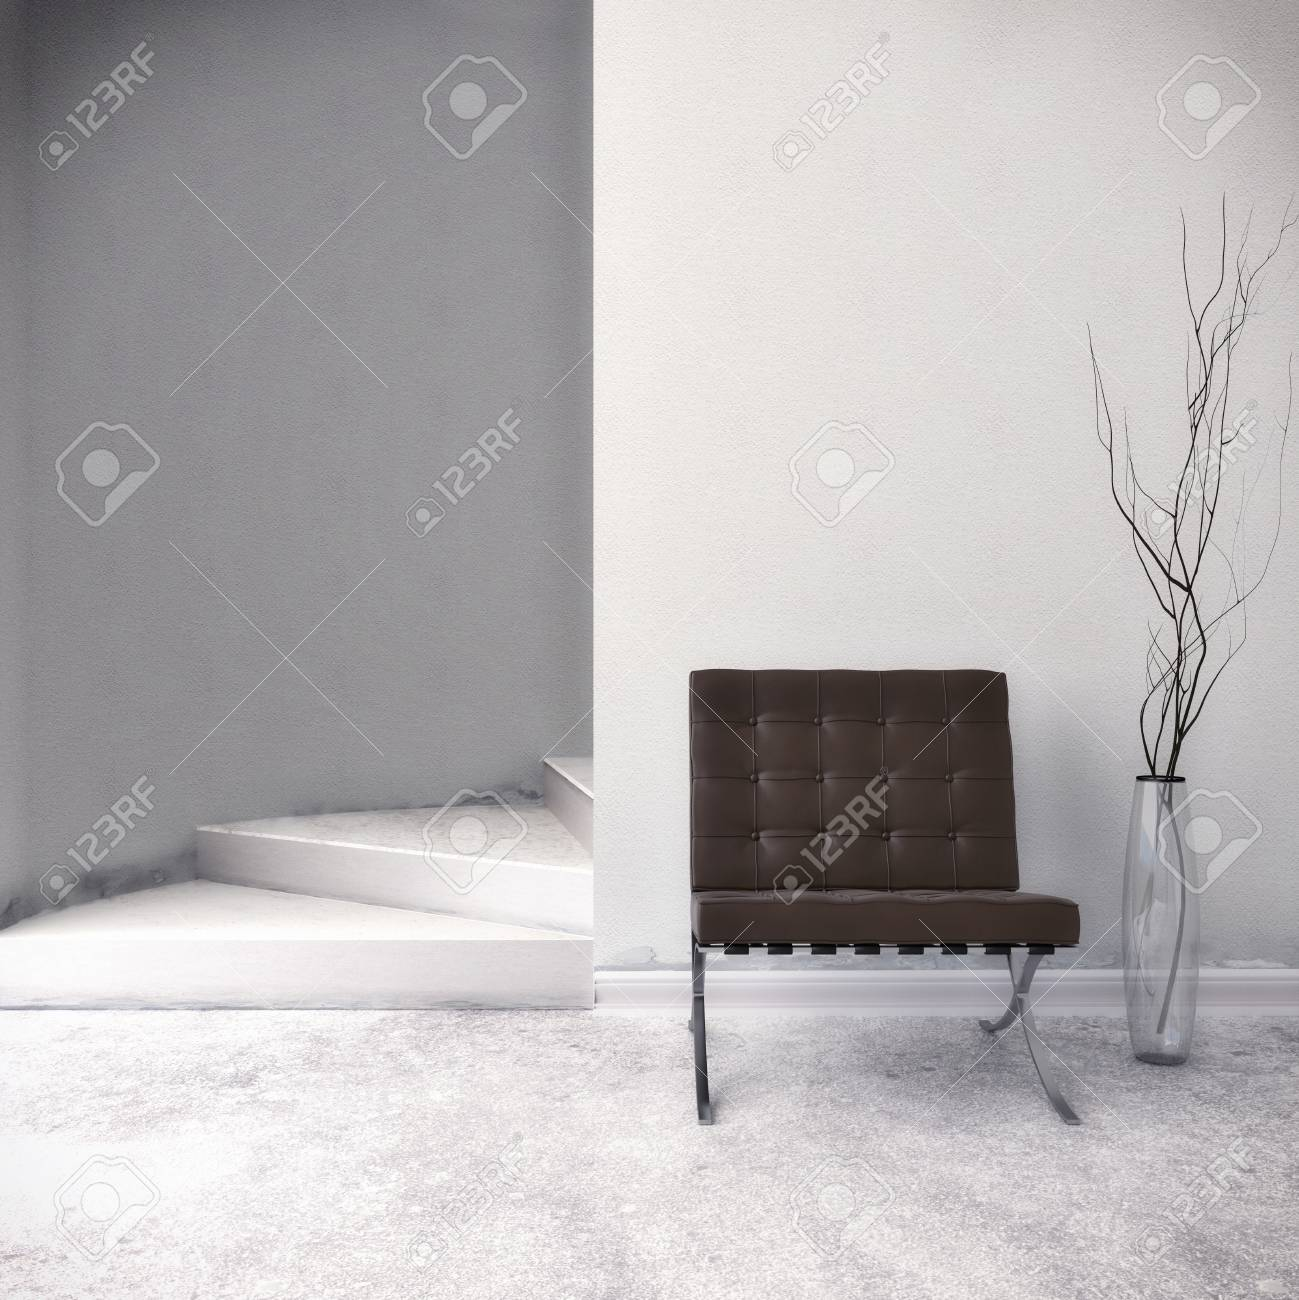 Brown Chair in front of a white wall Standard-Bild - 29945628